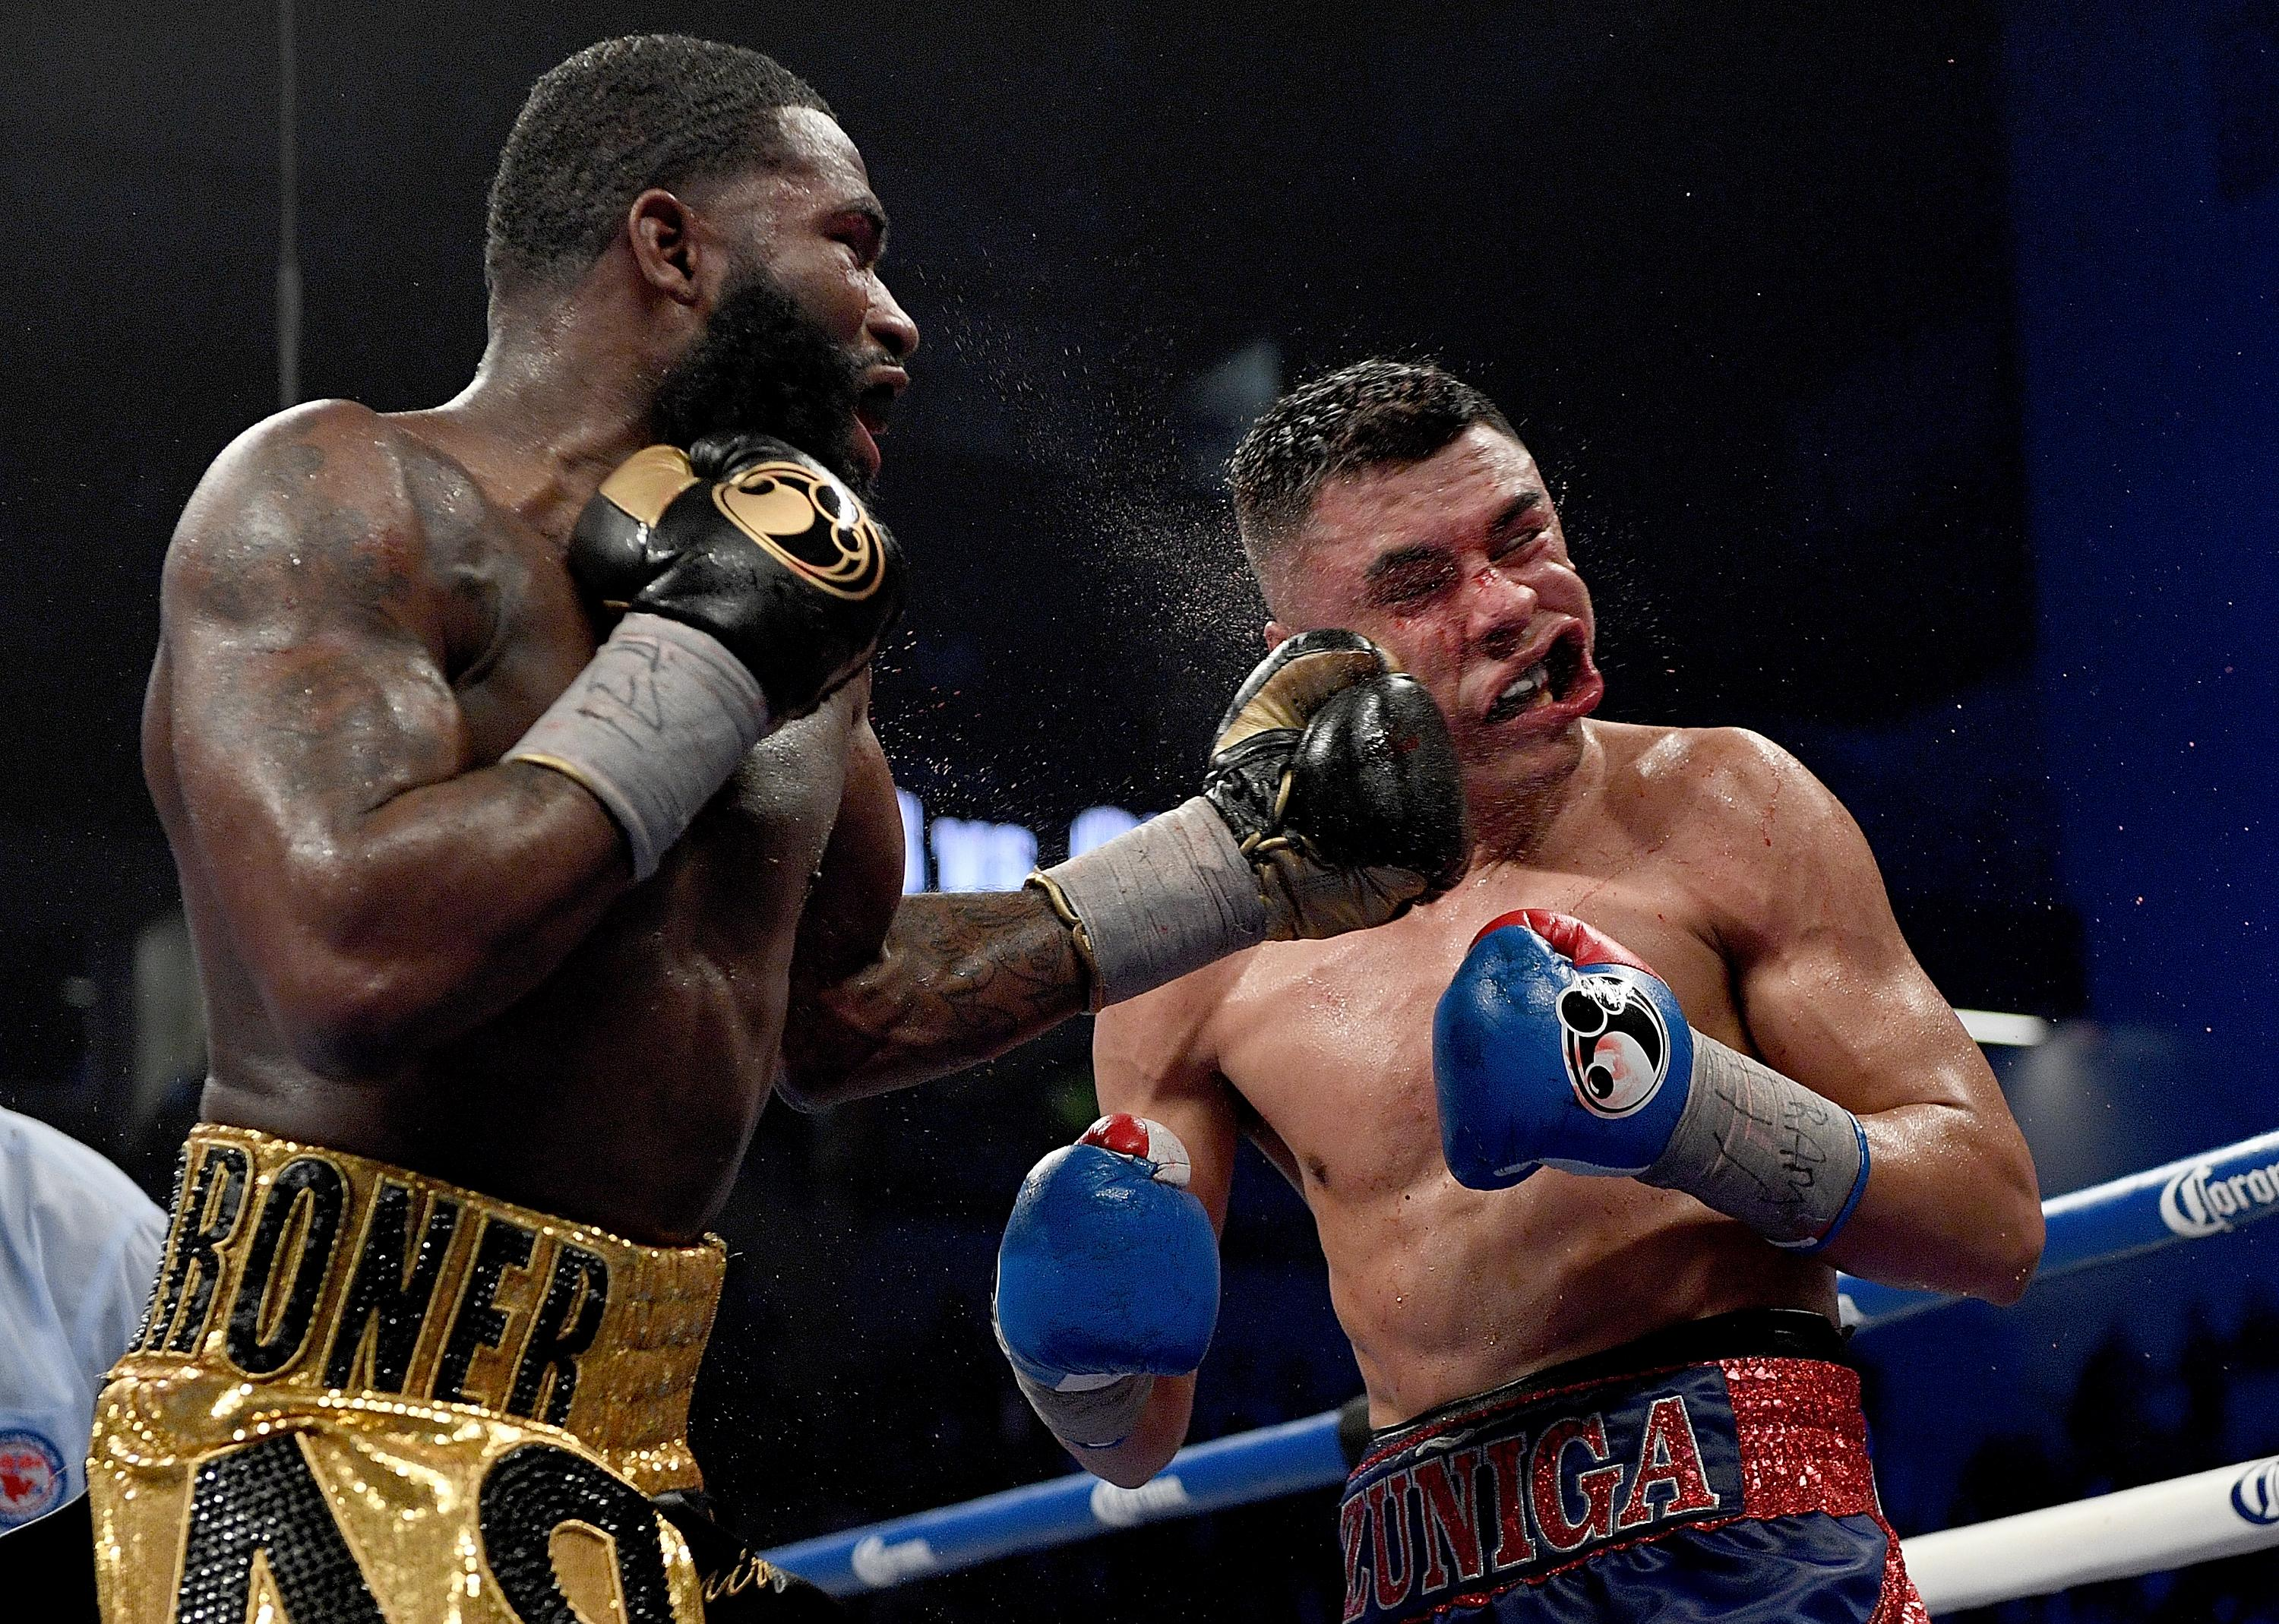 Four-weight champion Adrien Broner has been arrested after allegedly groping a woman